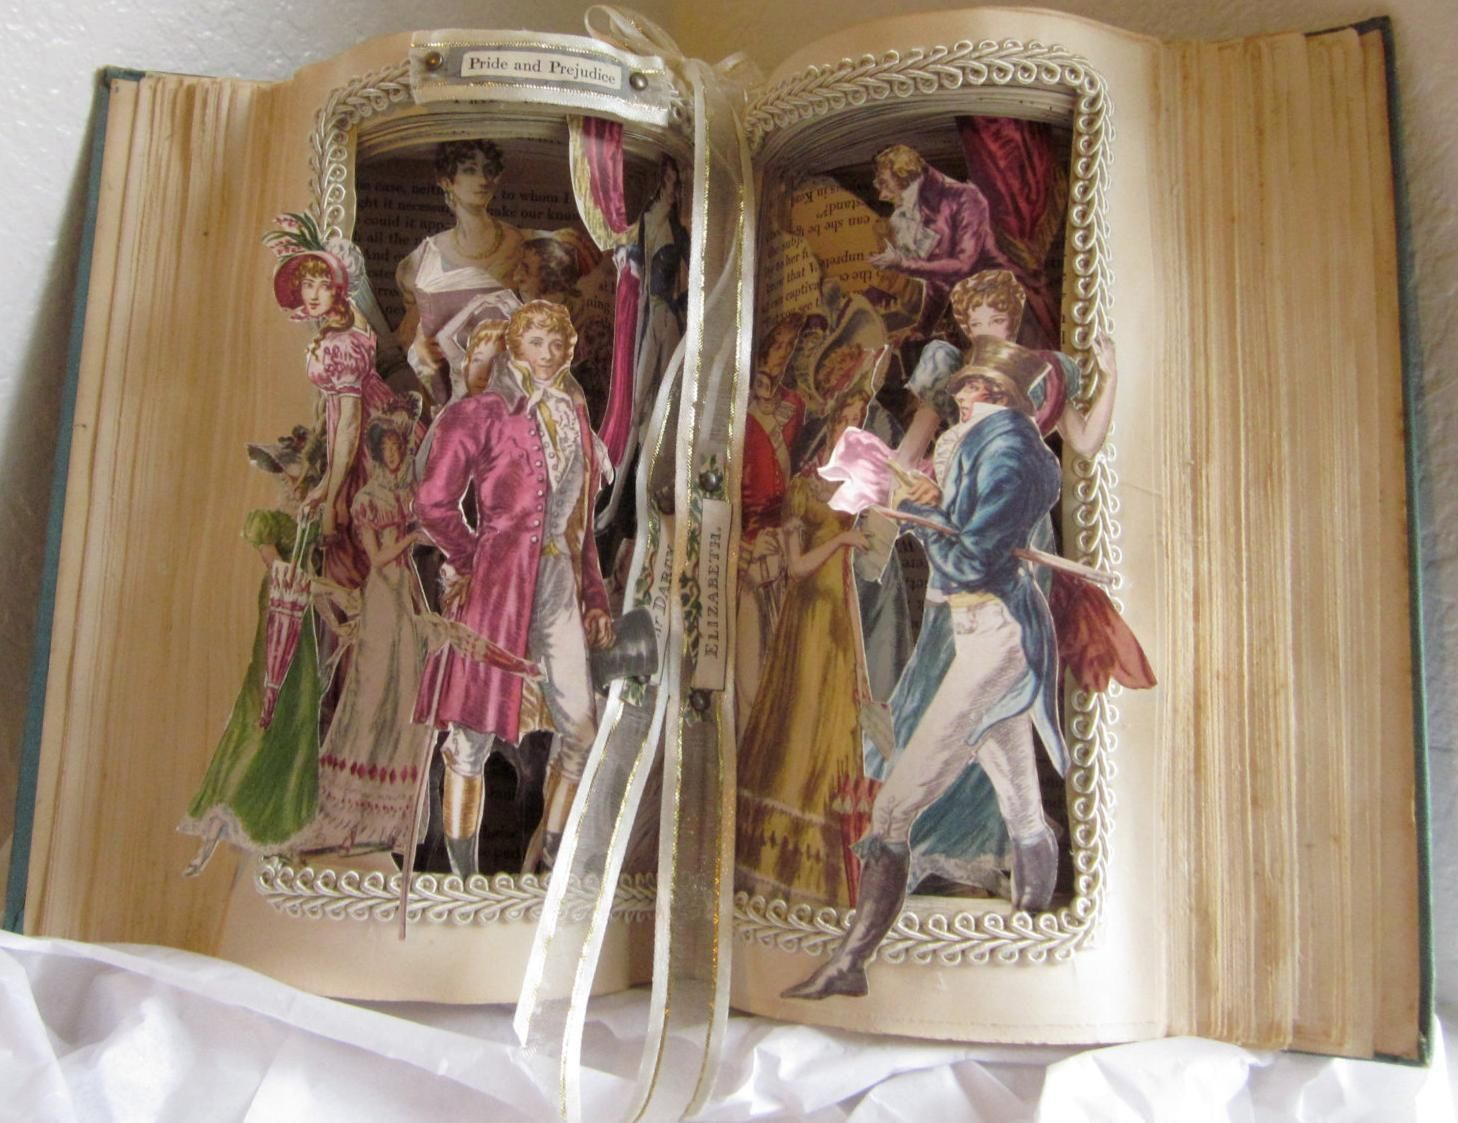 Pride and Prejudice altered book by Jane Austen vintage repurposed upscaled pop-up style